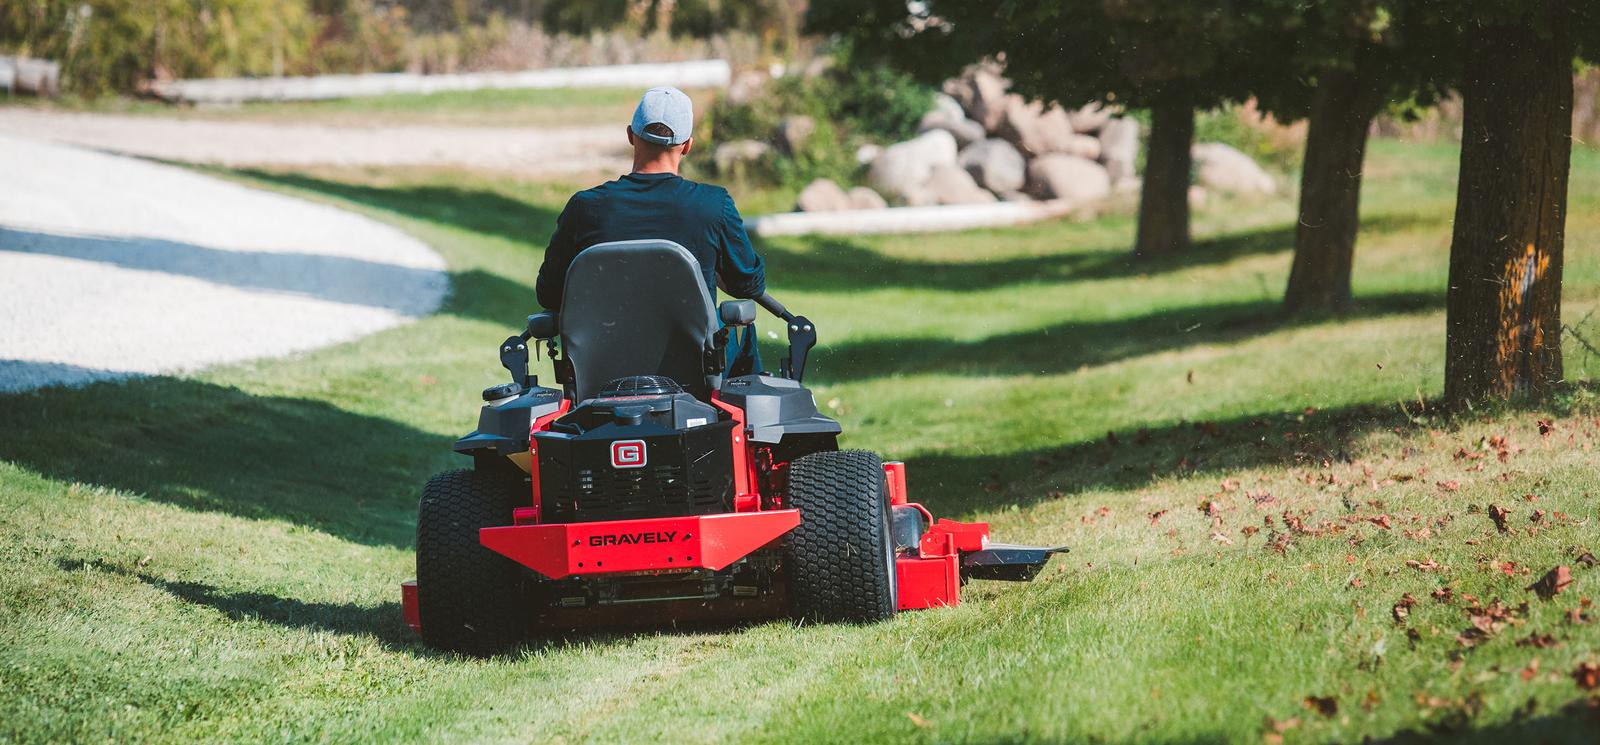 Man Riding Gravely® Zero-Turn Lawn Mower